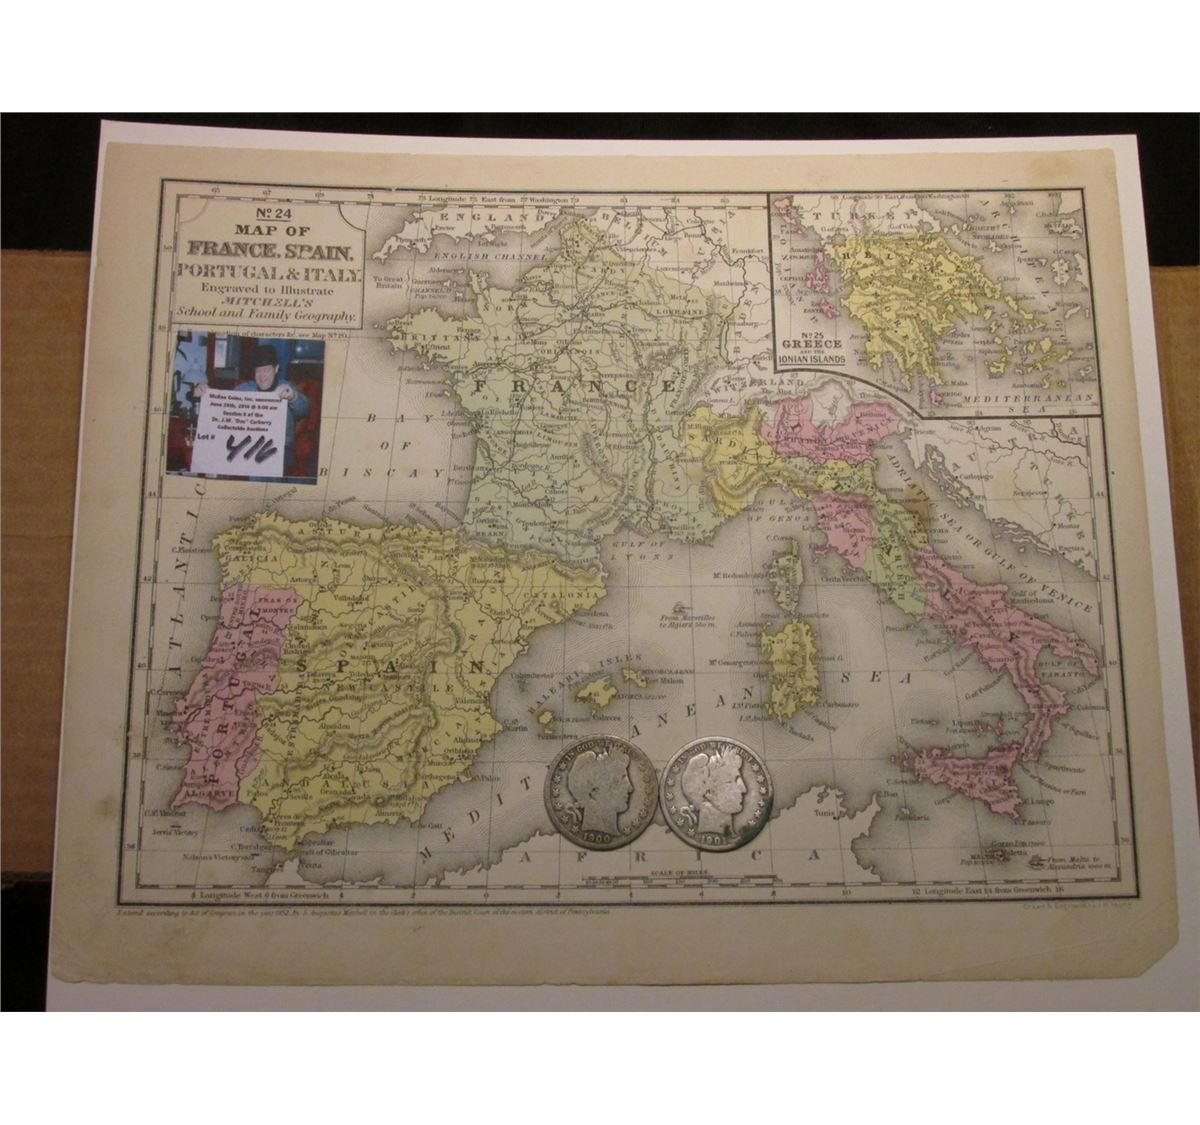 Map Of France N Italy.9 25 X 11 5 Map Of France Spain Portugal Italy Engraved Ready For Framing 1900 P 1901 P